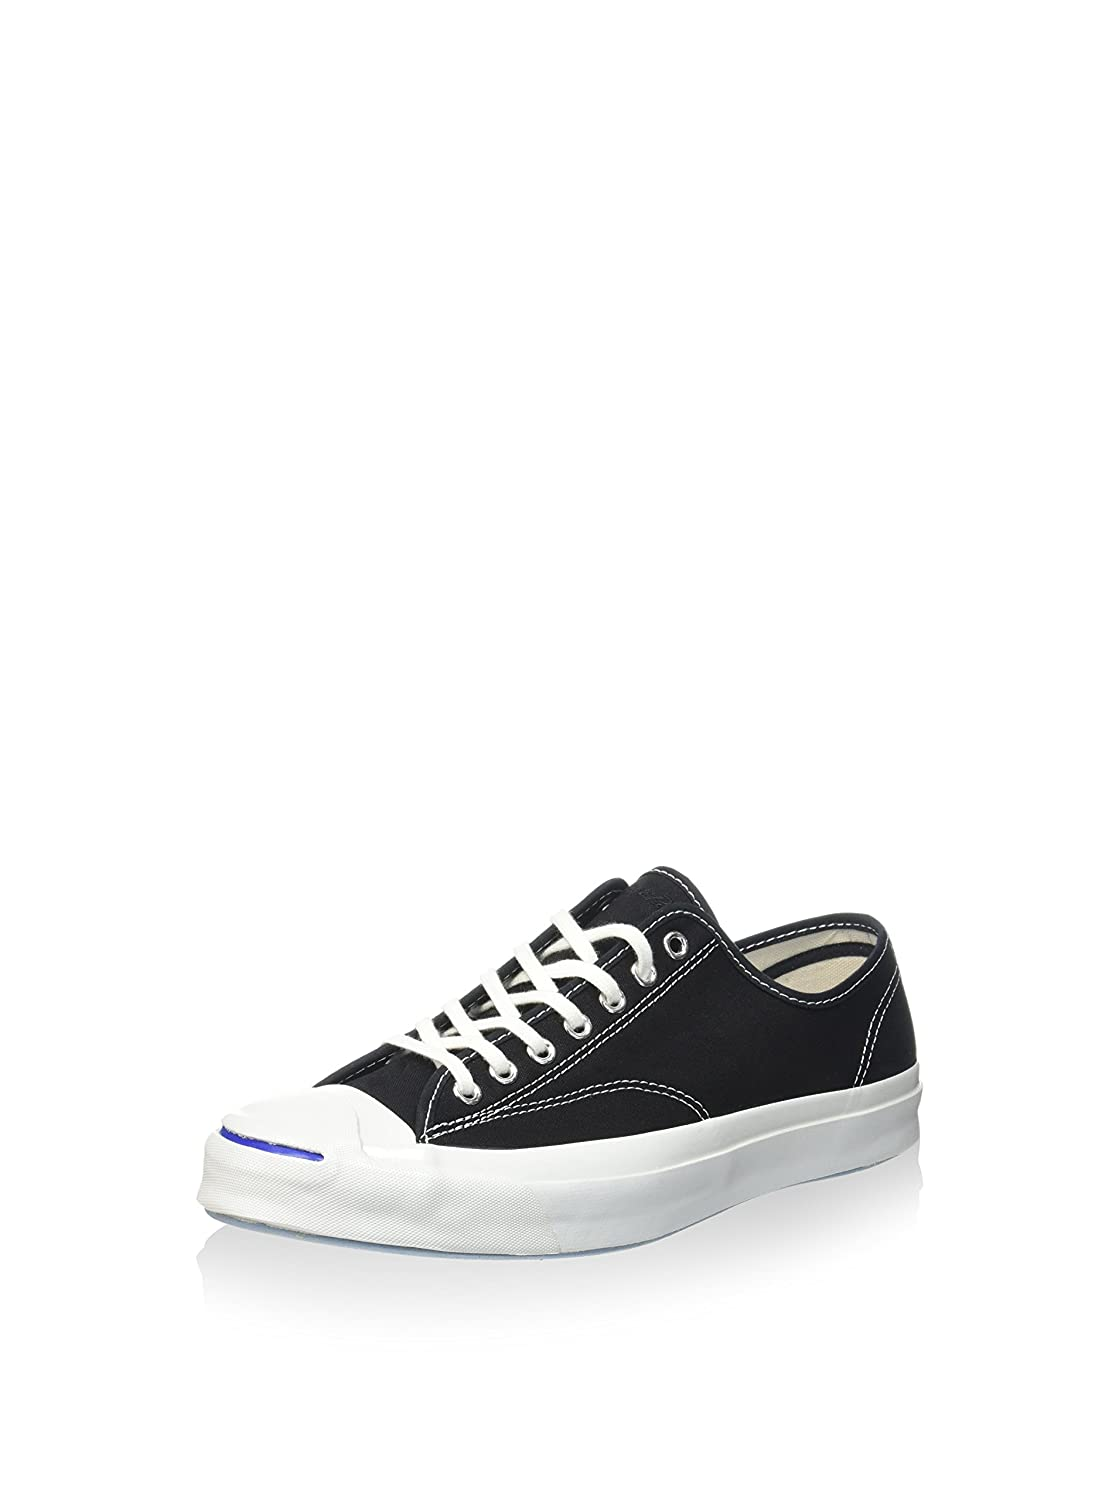 d7fcaab6845336 Converse Unisex Jack Purcell Signature Ox Fashion Sneakers Black Black 10.5  B(M) US Women   9 D(M) US Men  Buy Online at Low Prices in India - Amazon.in